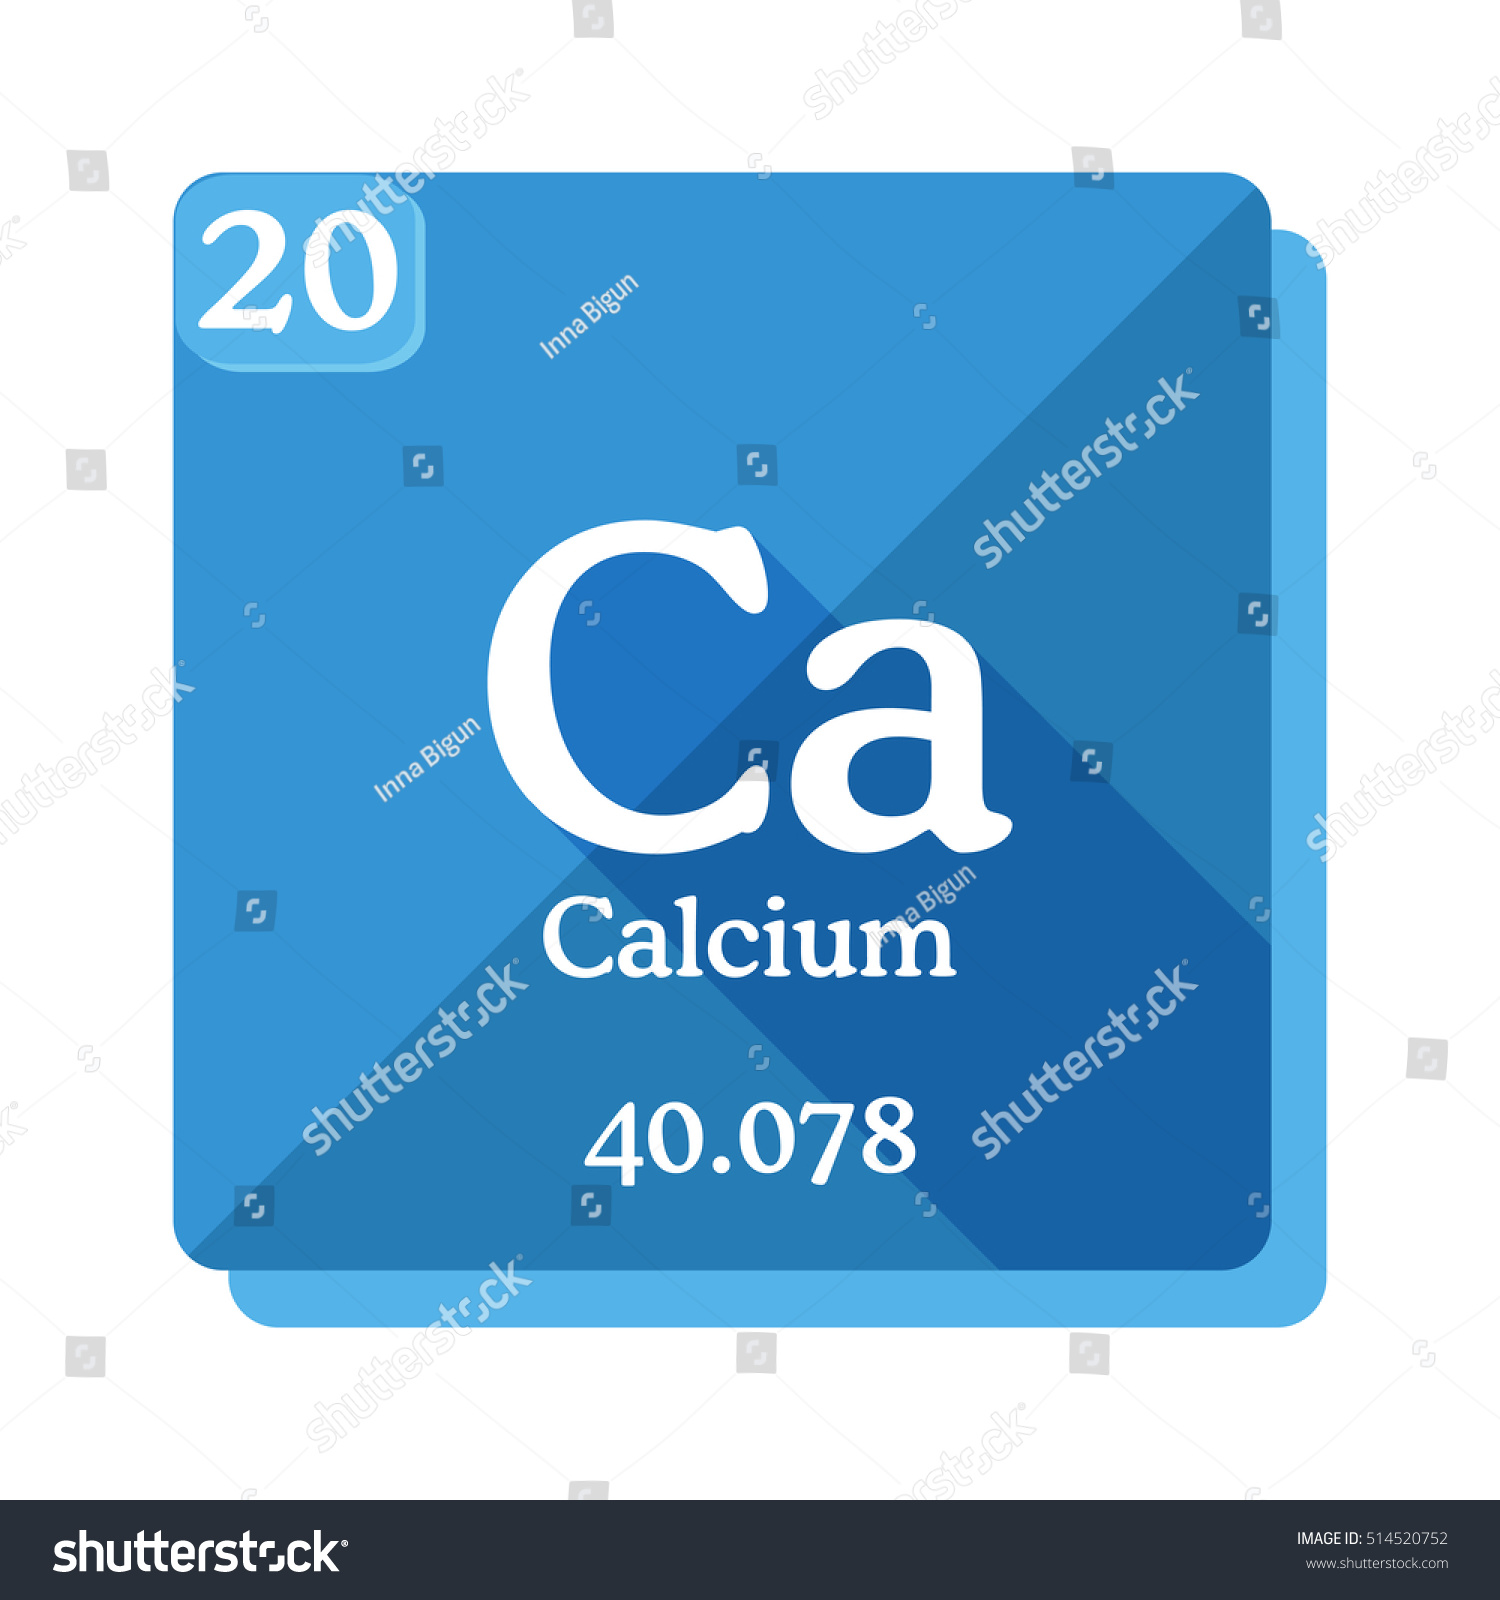 Calcium ca element periodic table flat stock vector 514520752 calcium ca element of the periodic table flat icon with long shadow gamestrikefo Images